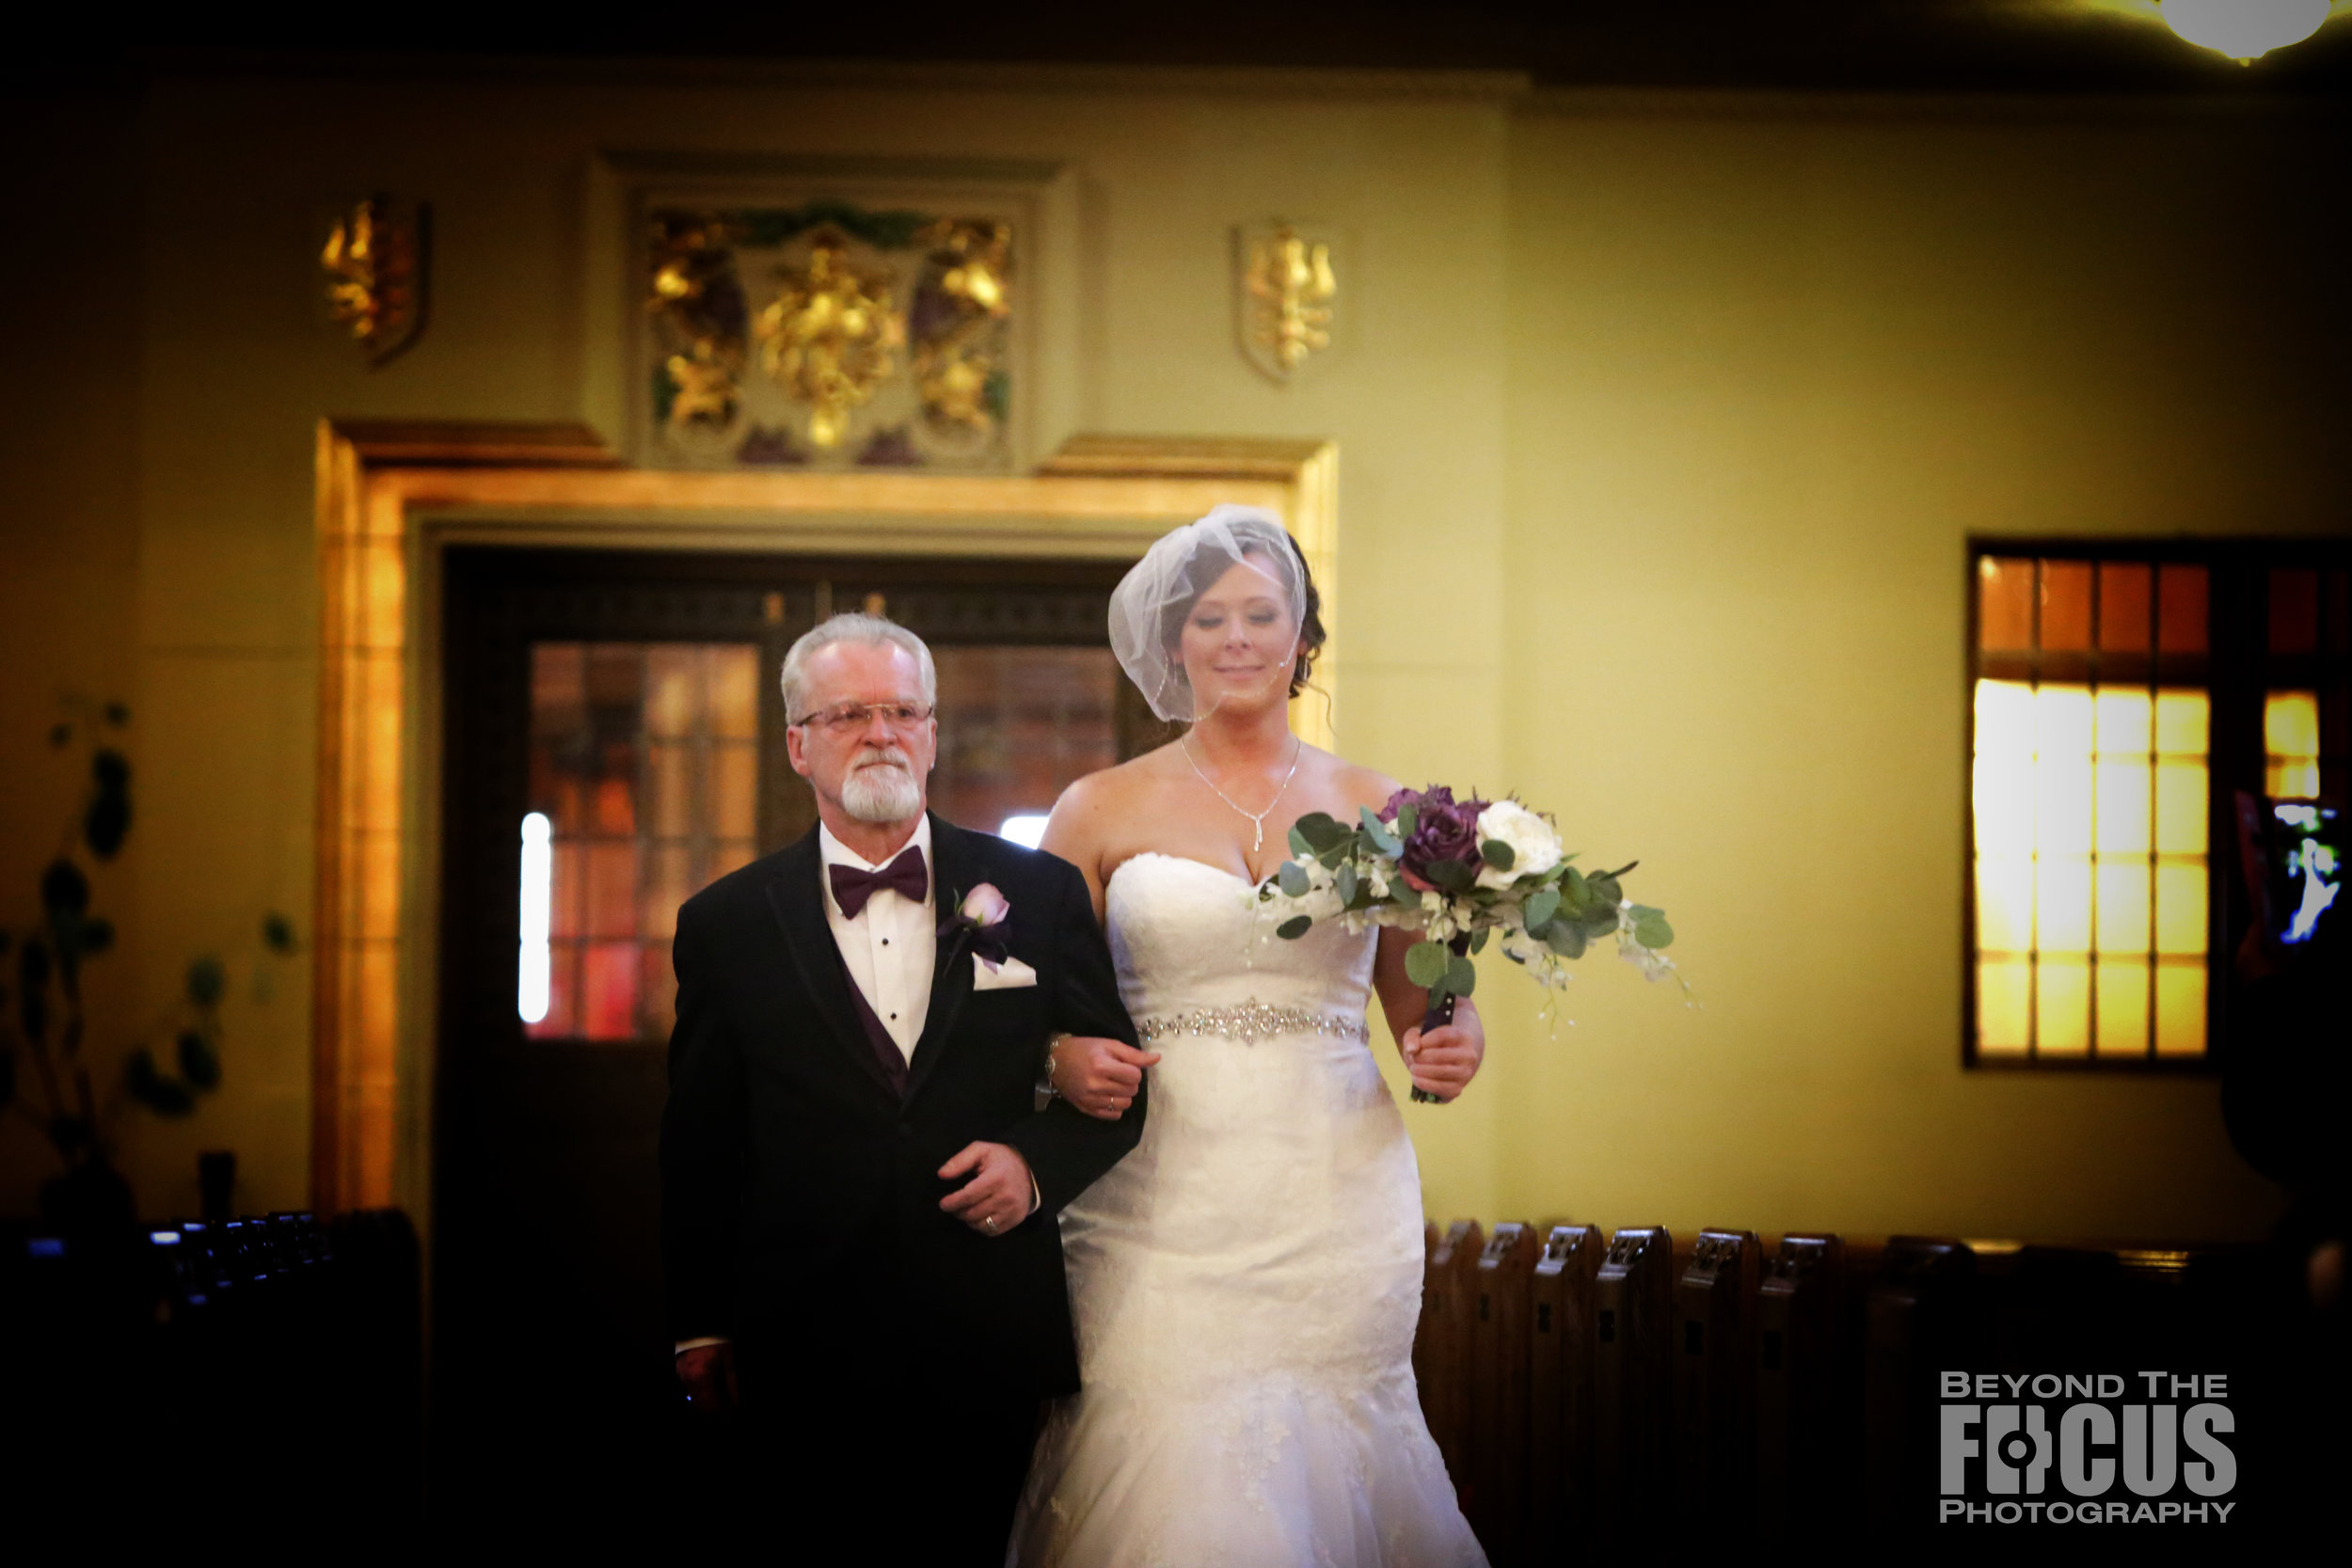 Ferguson_WeddingCeremony_2016_25.jpg